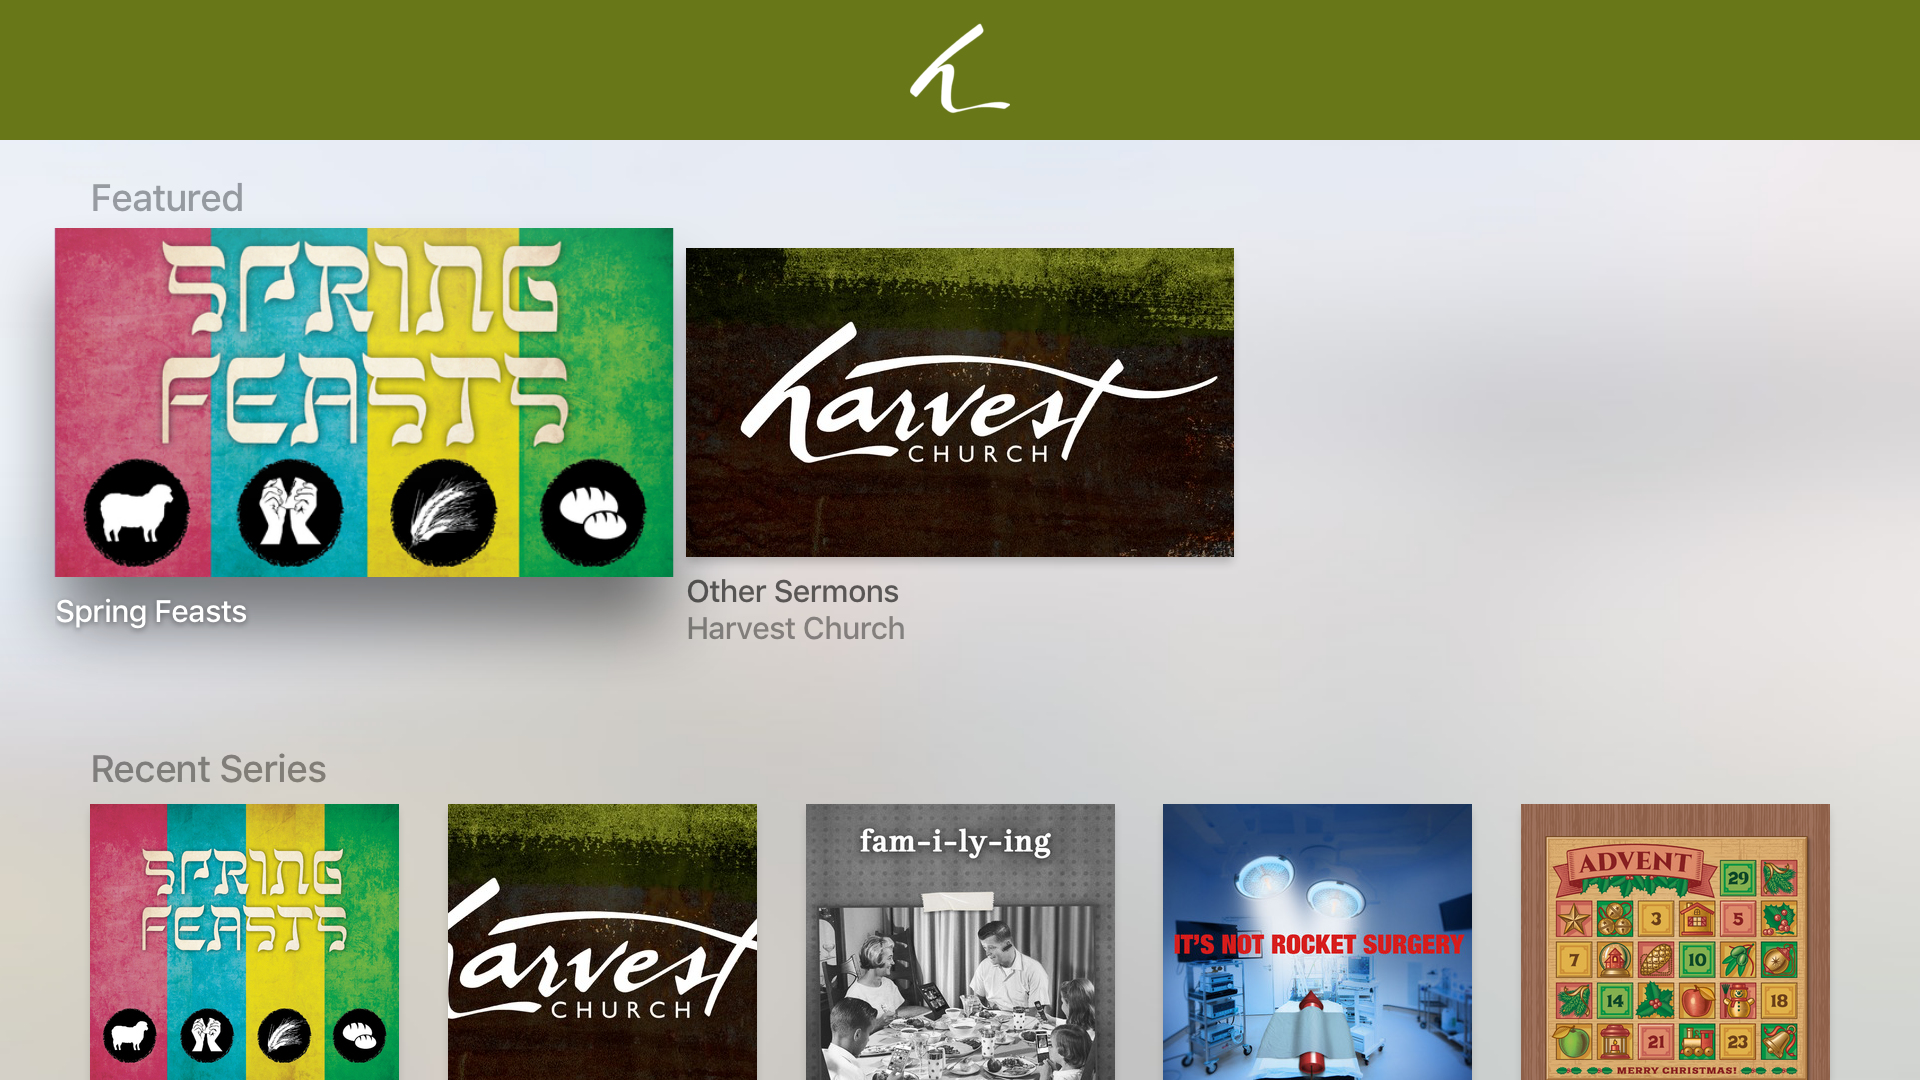 Harvest Church App screenshot 7